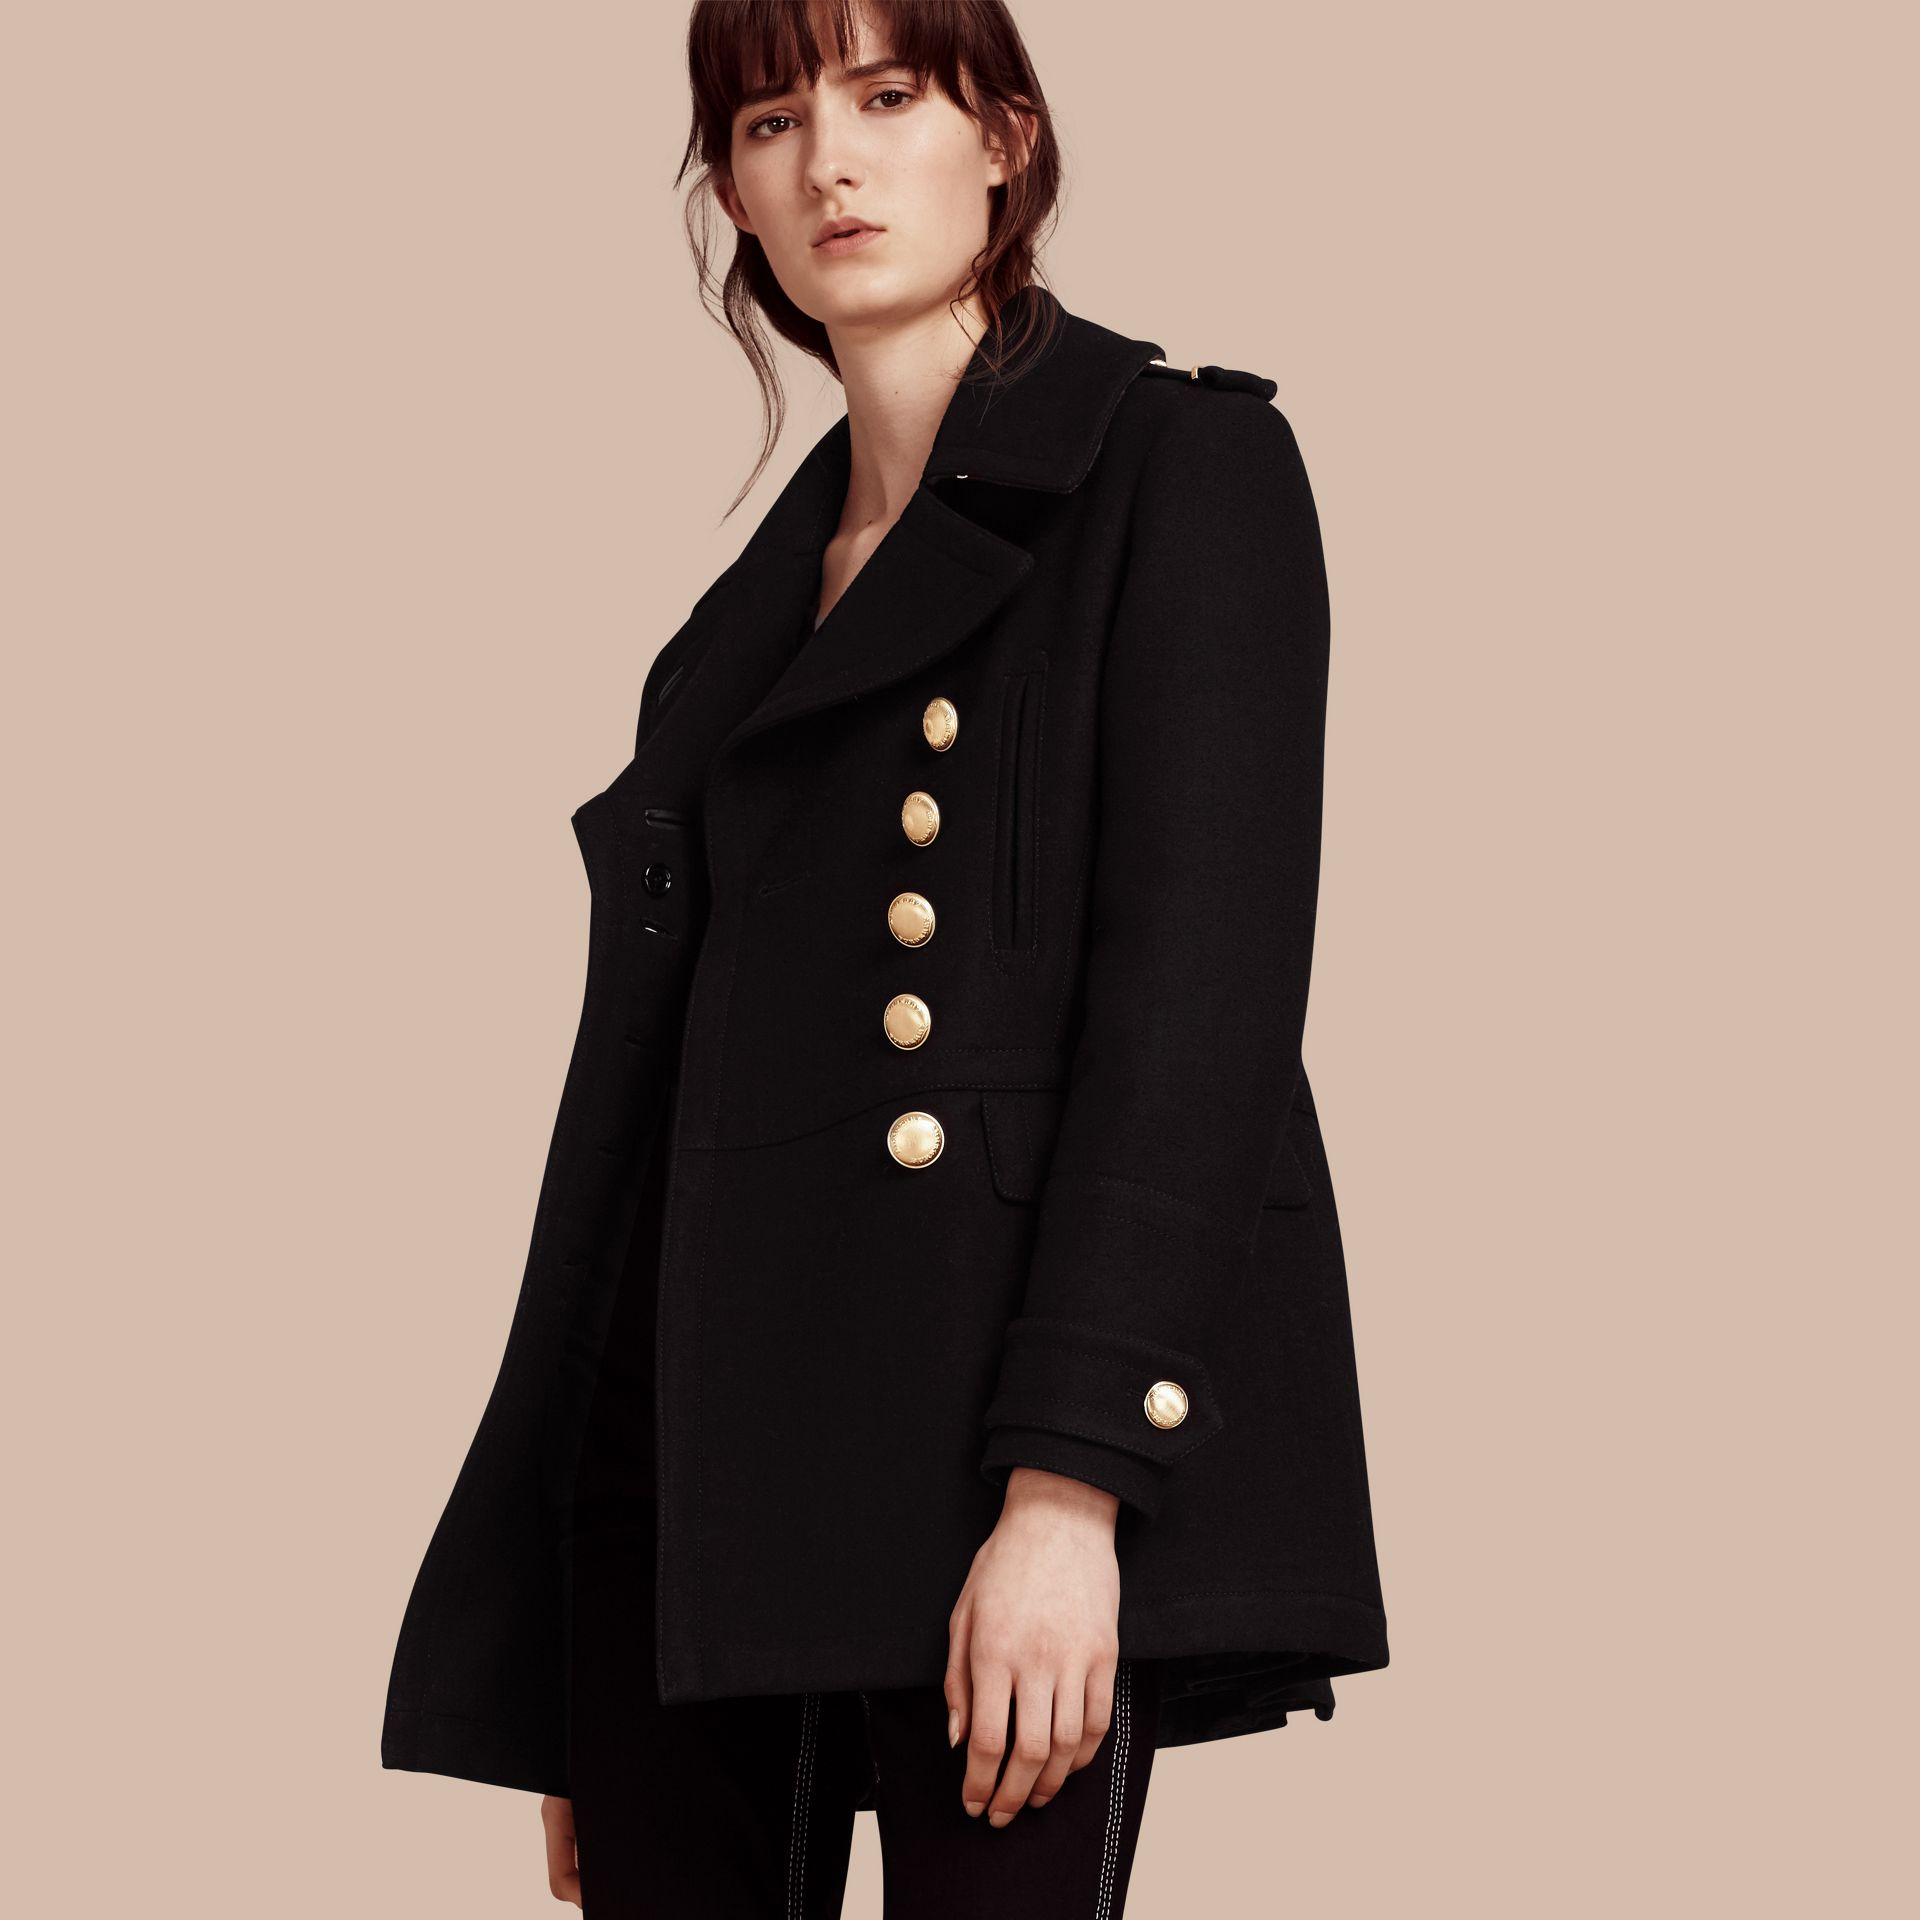 Black Wool Blend Military Pea Coat - gallery image 1